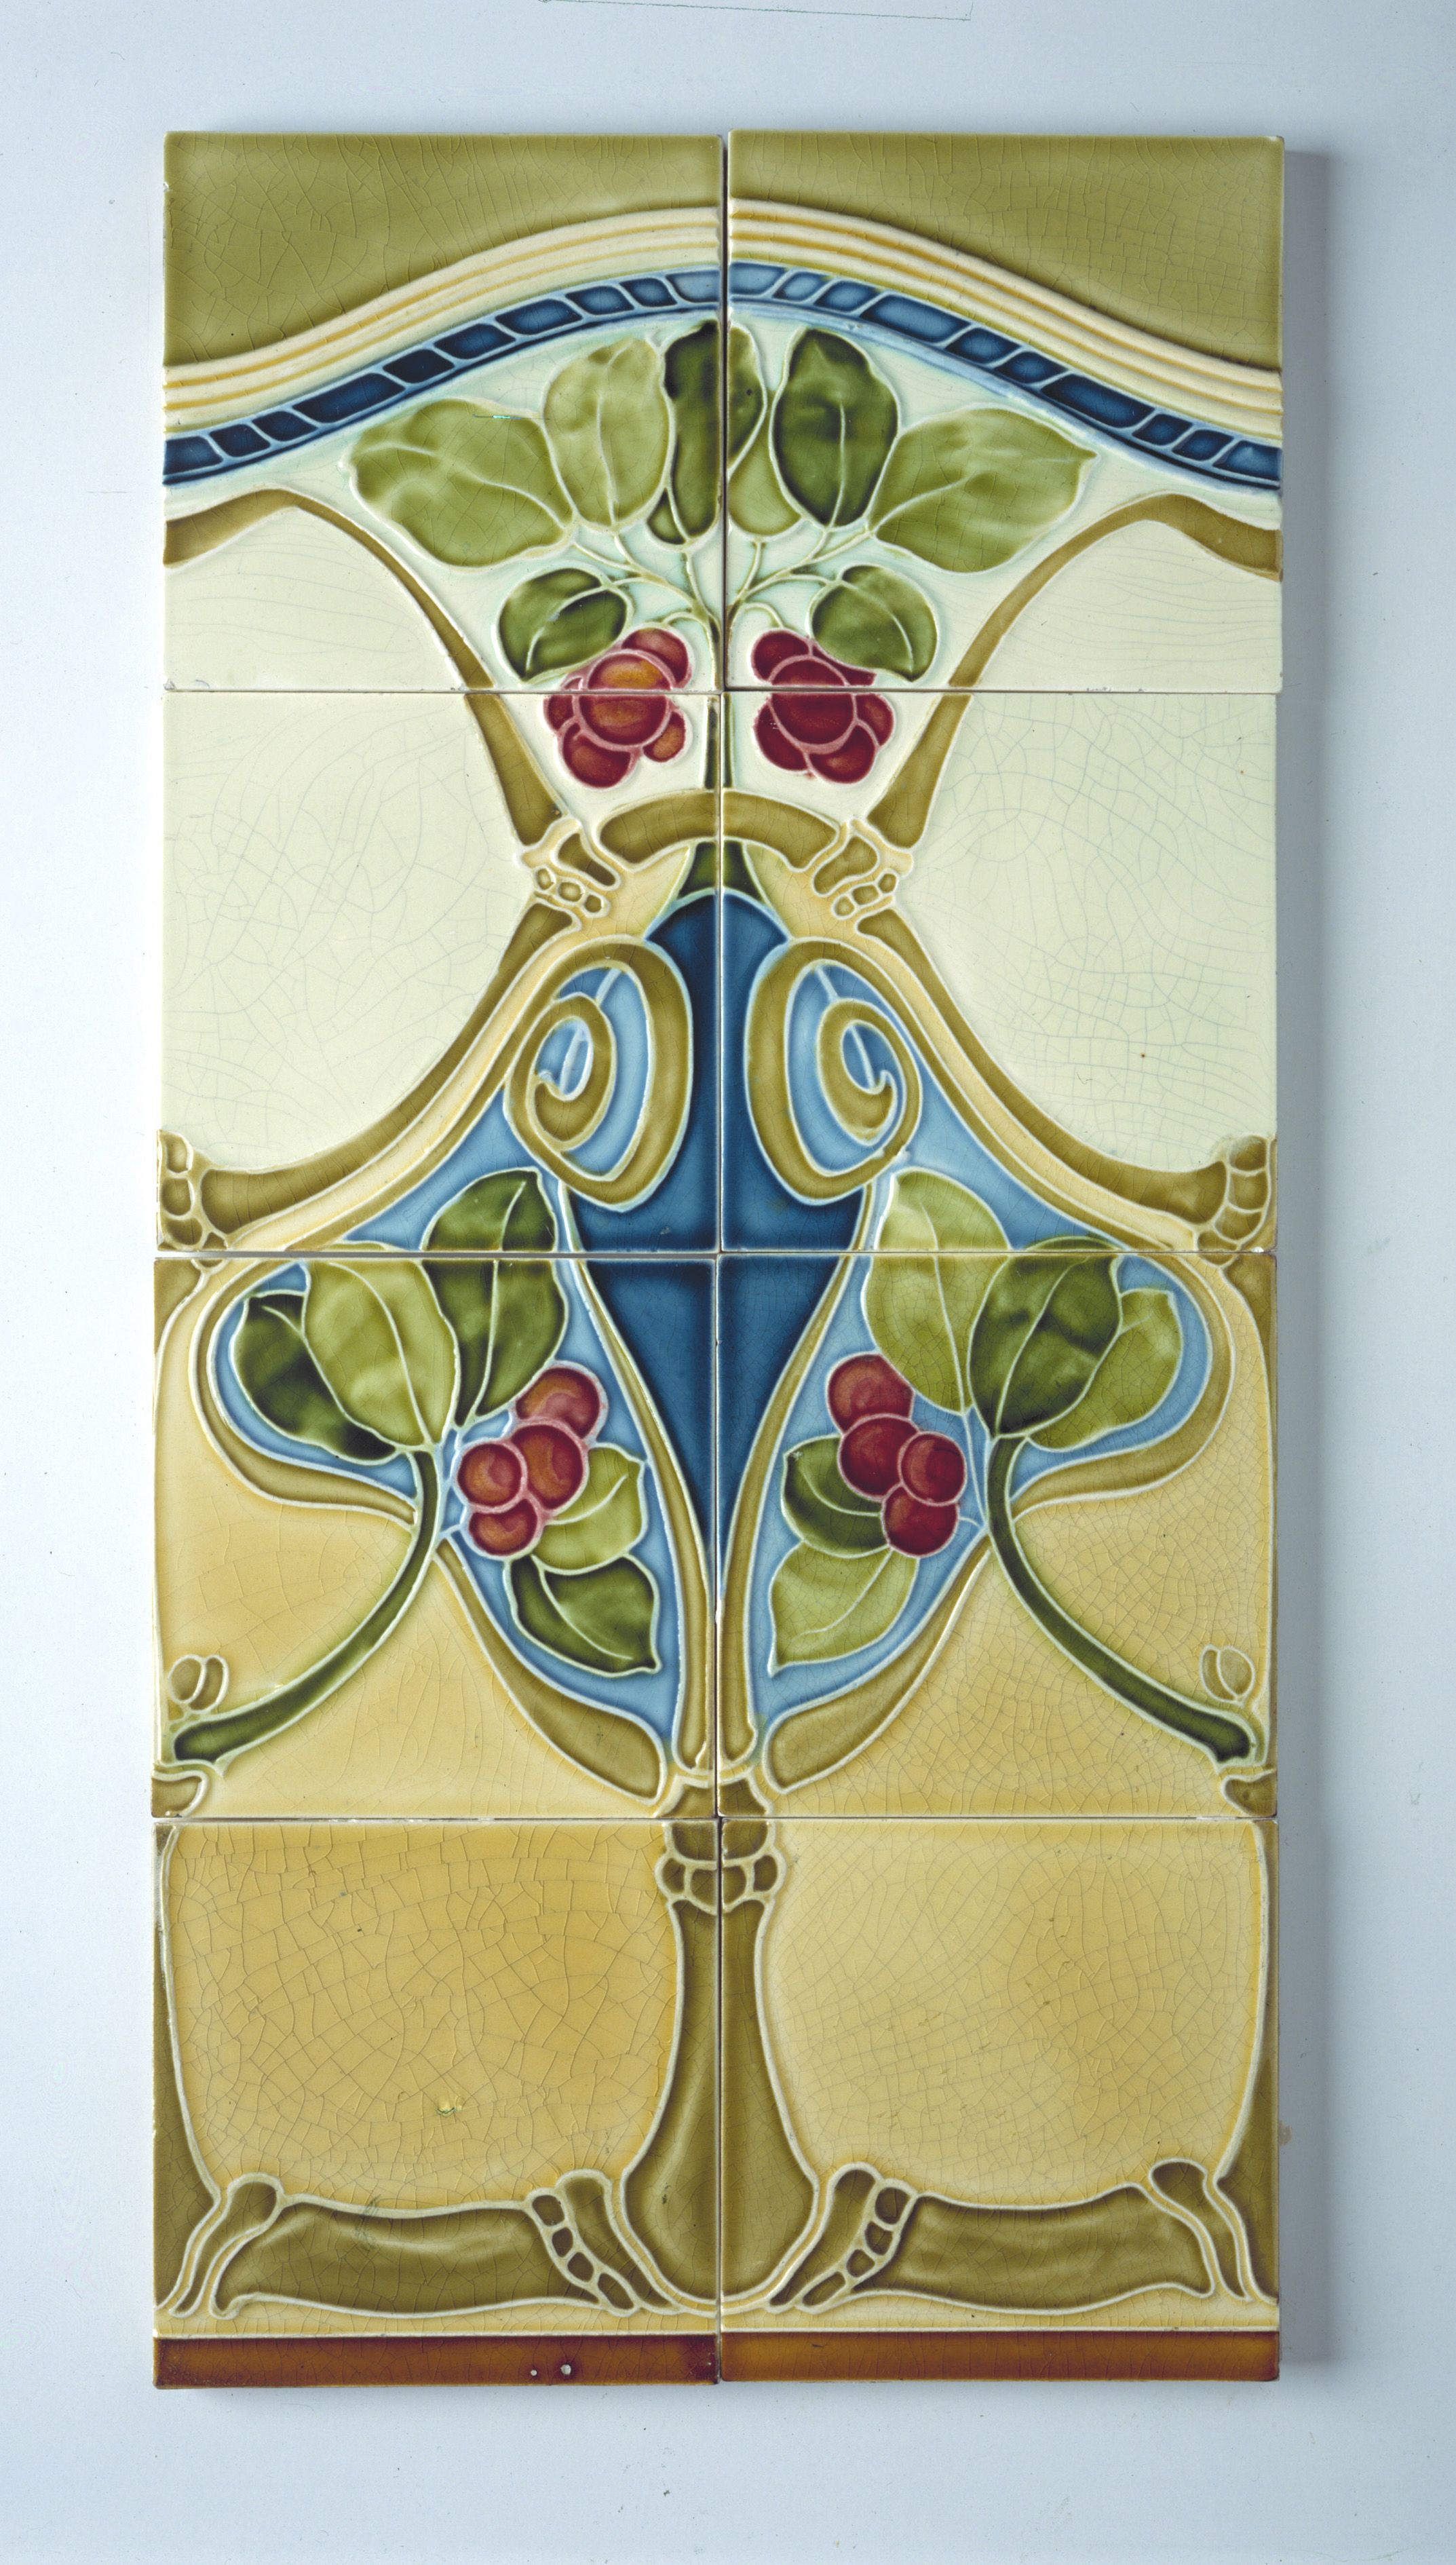 tile design from the past | Villeroy & Boch